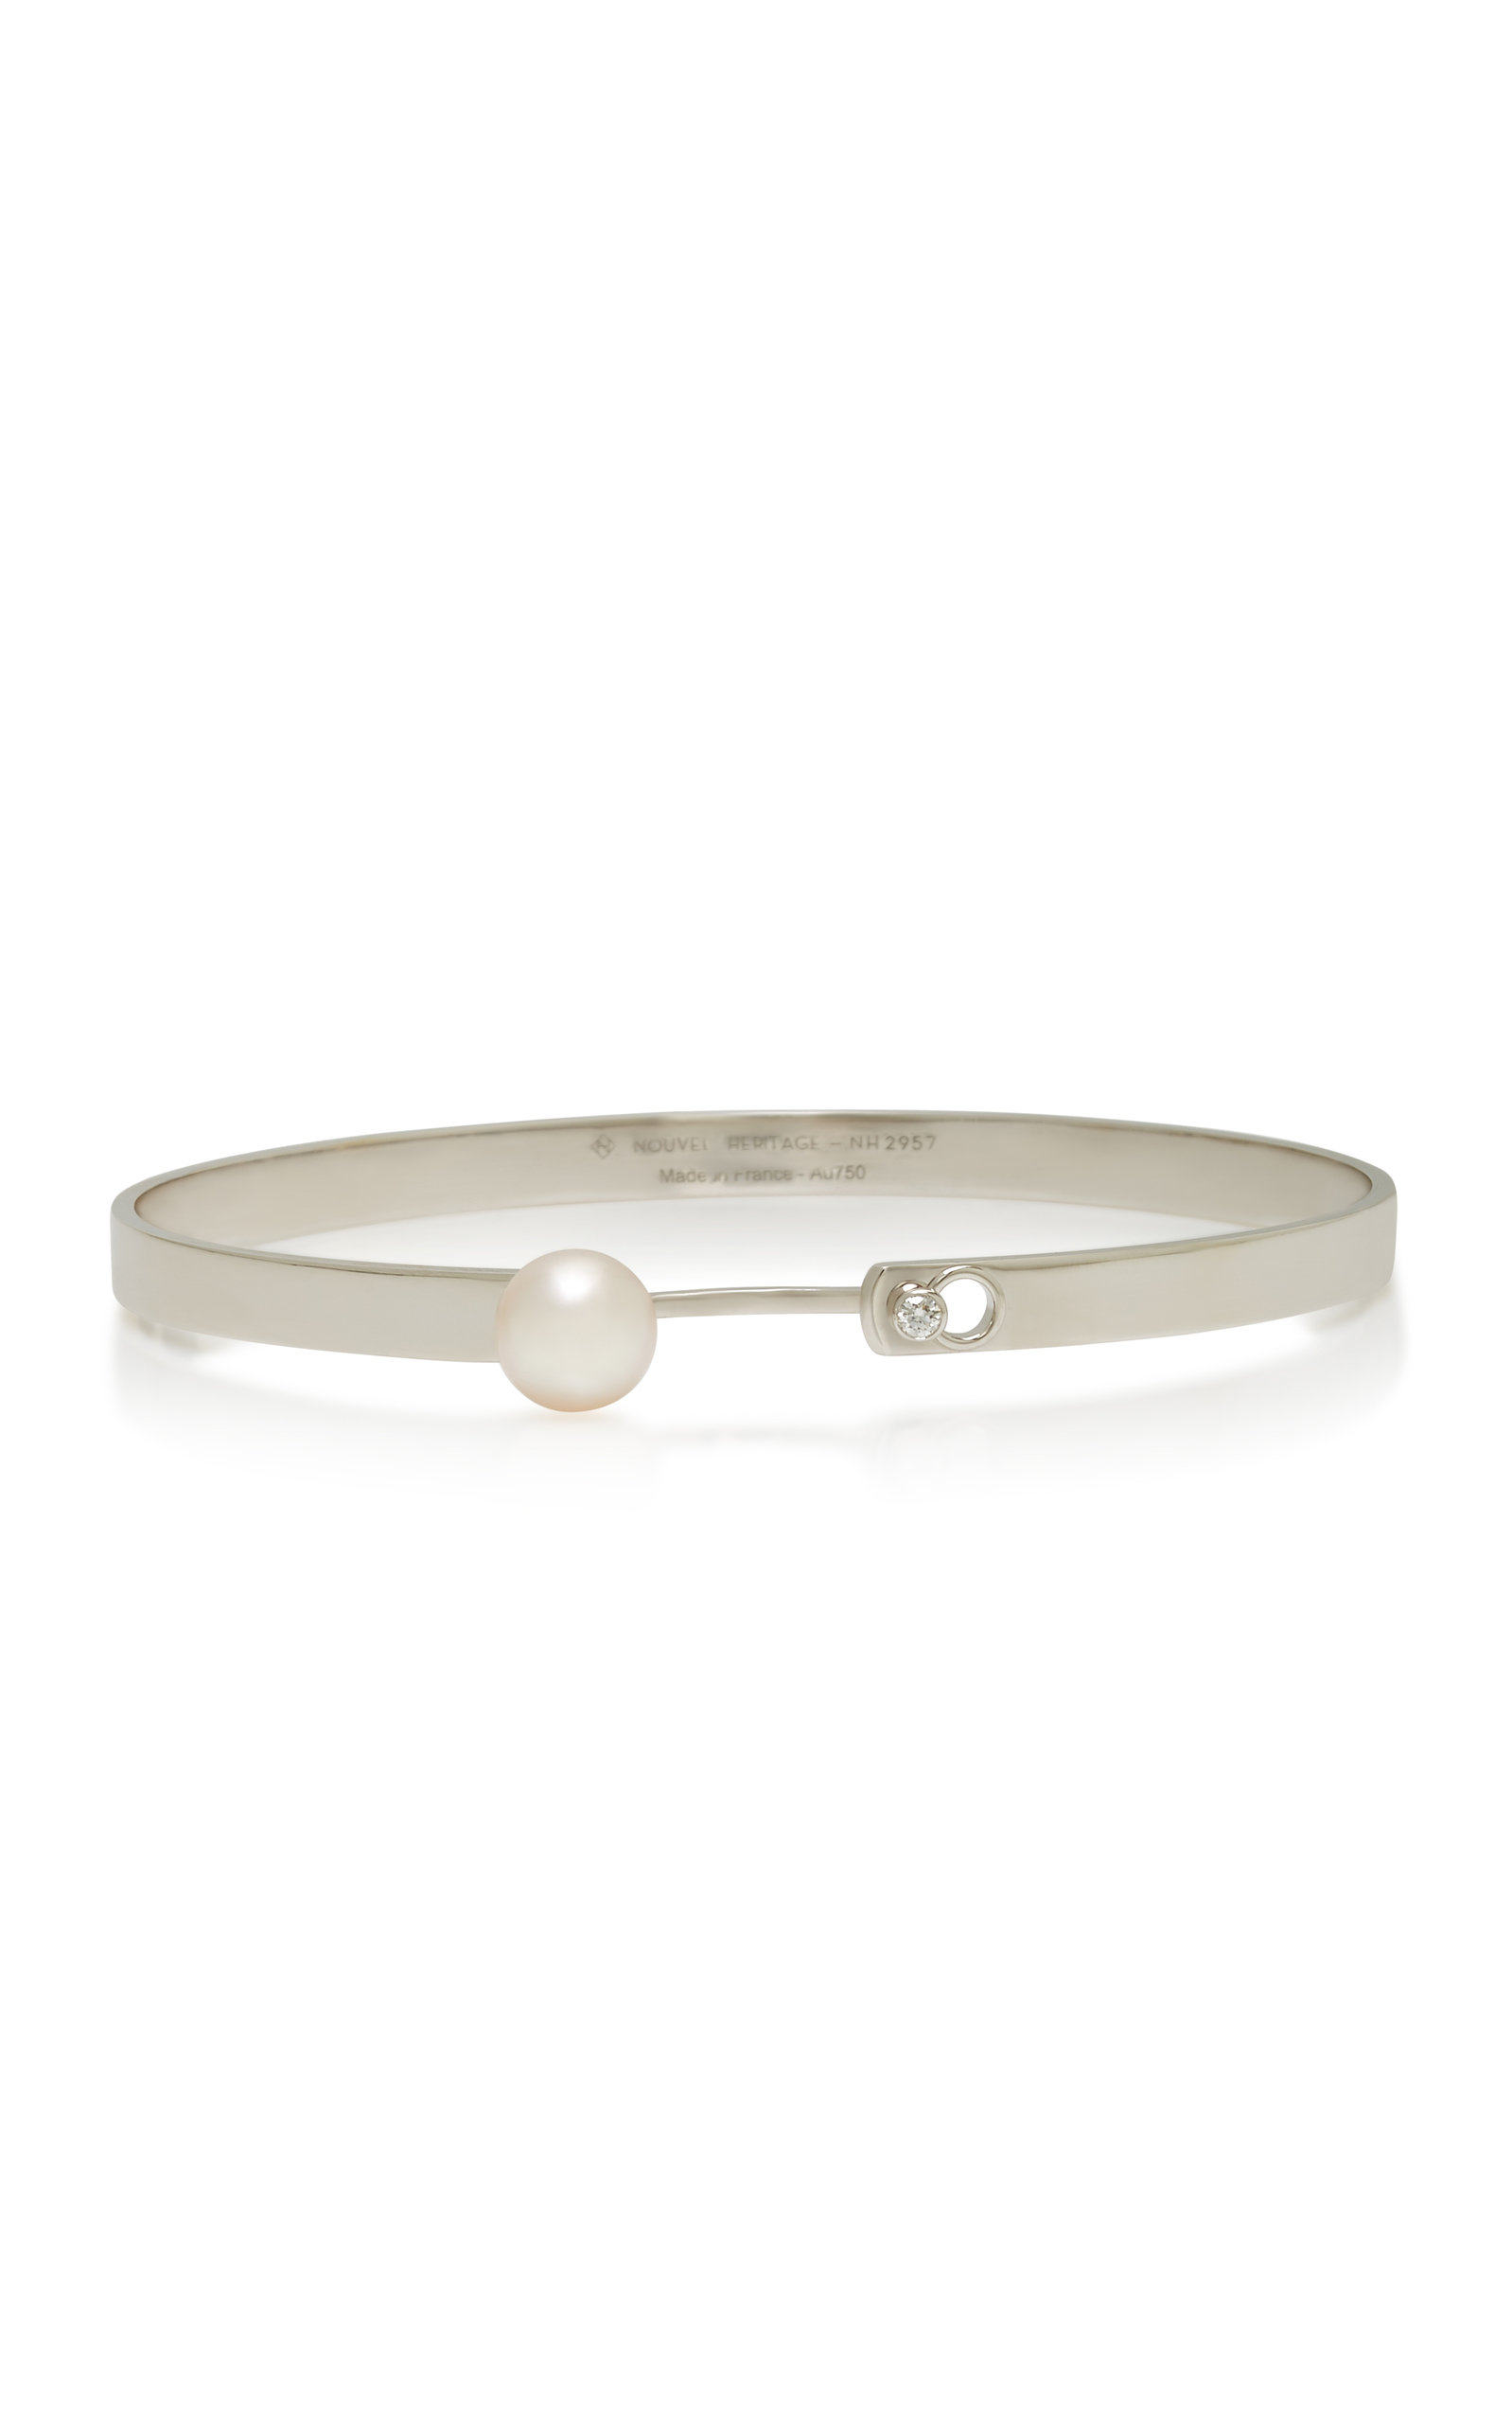 NOUVEL HERITAGE LUNCH WITH MOM 18K WHITE GOLD DIAMOND AND PEARL BANGLE